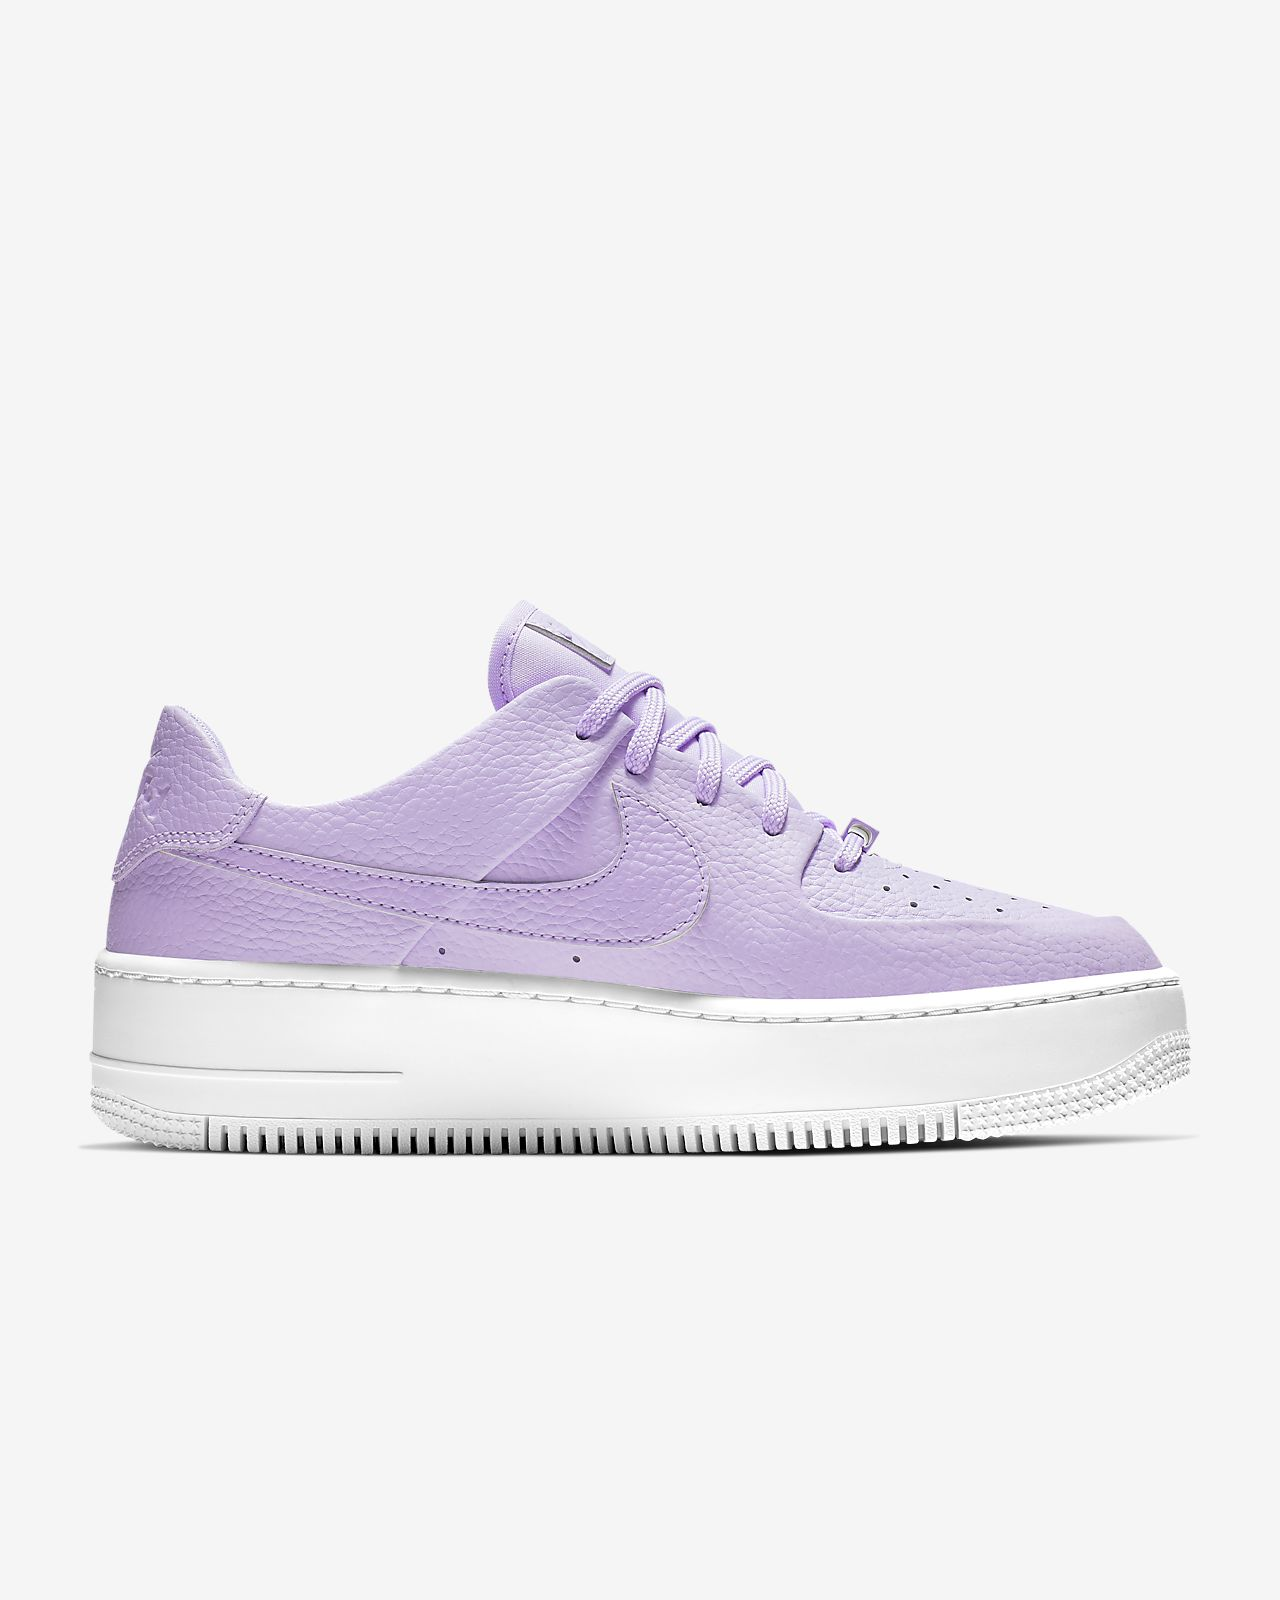 official photos fe981 e0f0b ... Chaussure Nike Air Force 1 Sage Low pour Femme